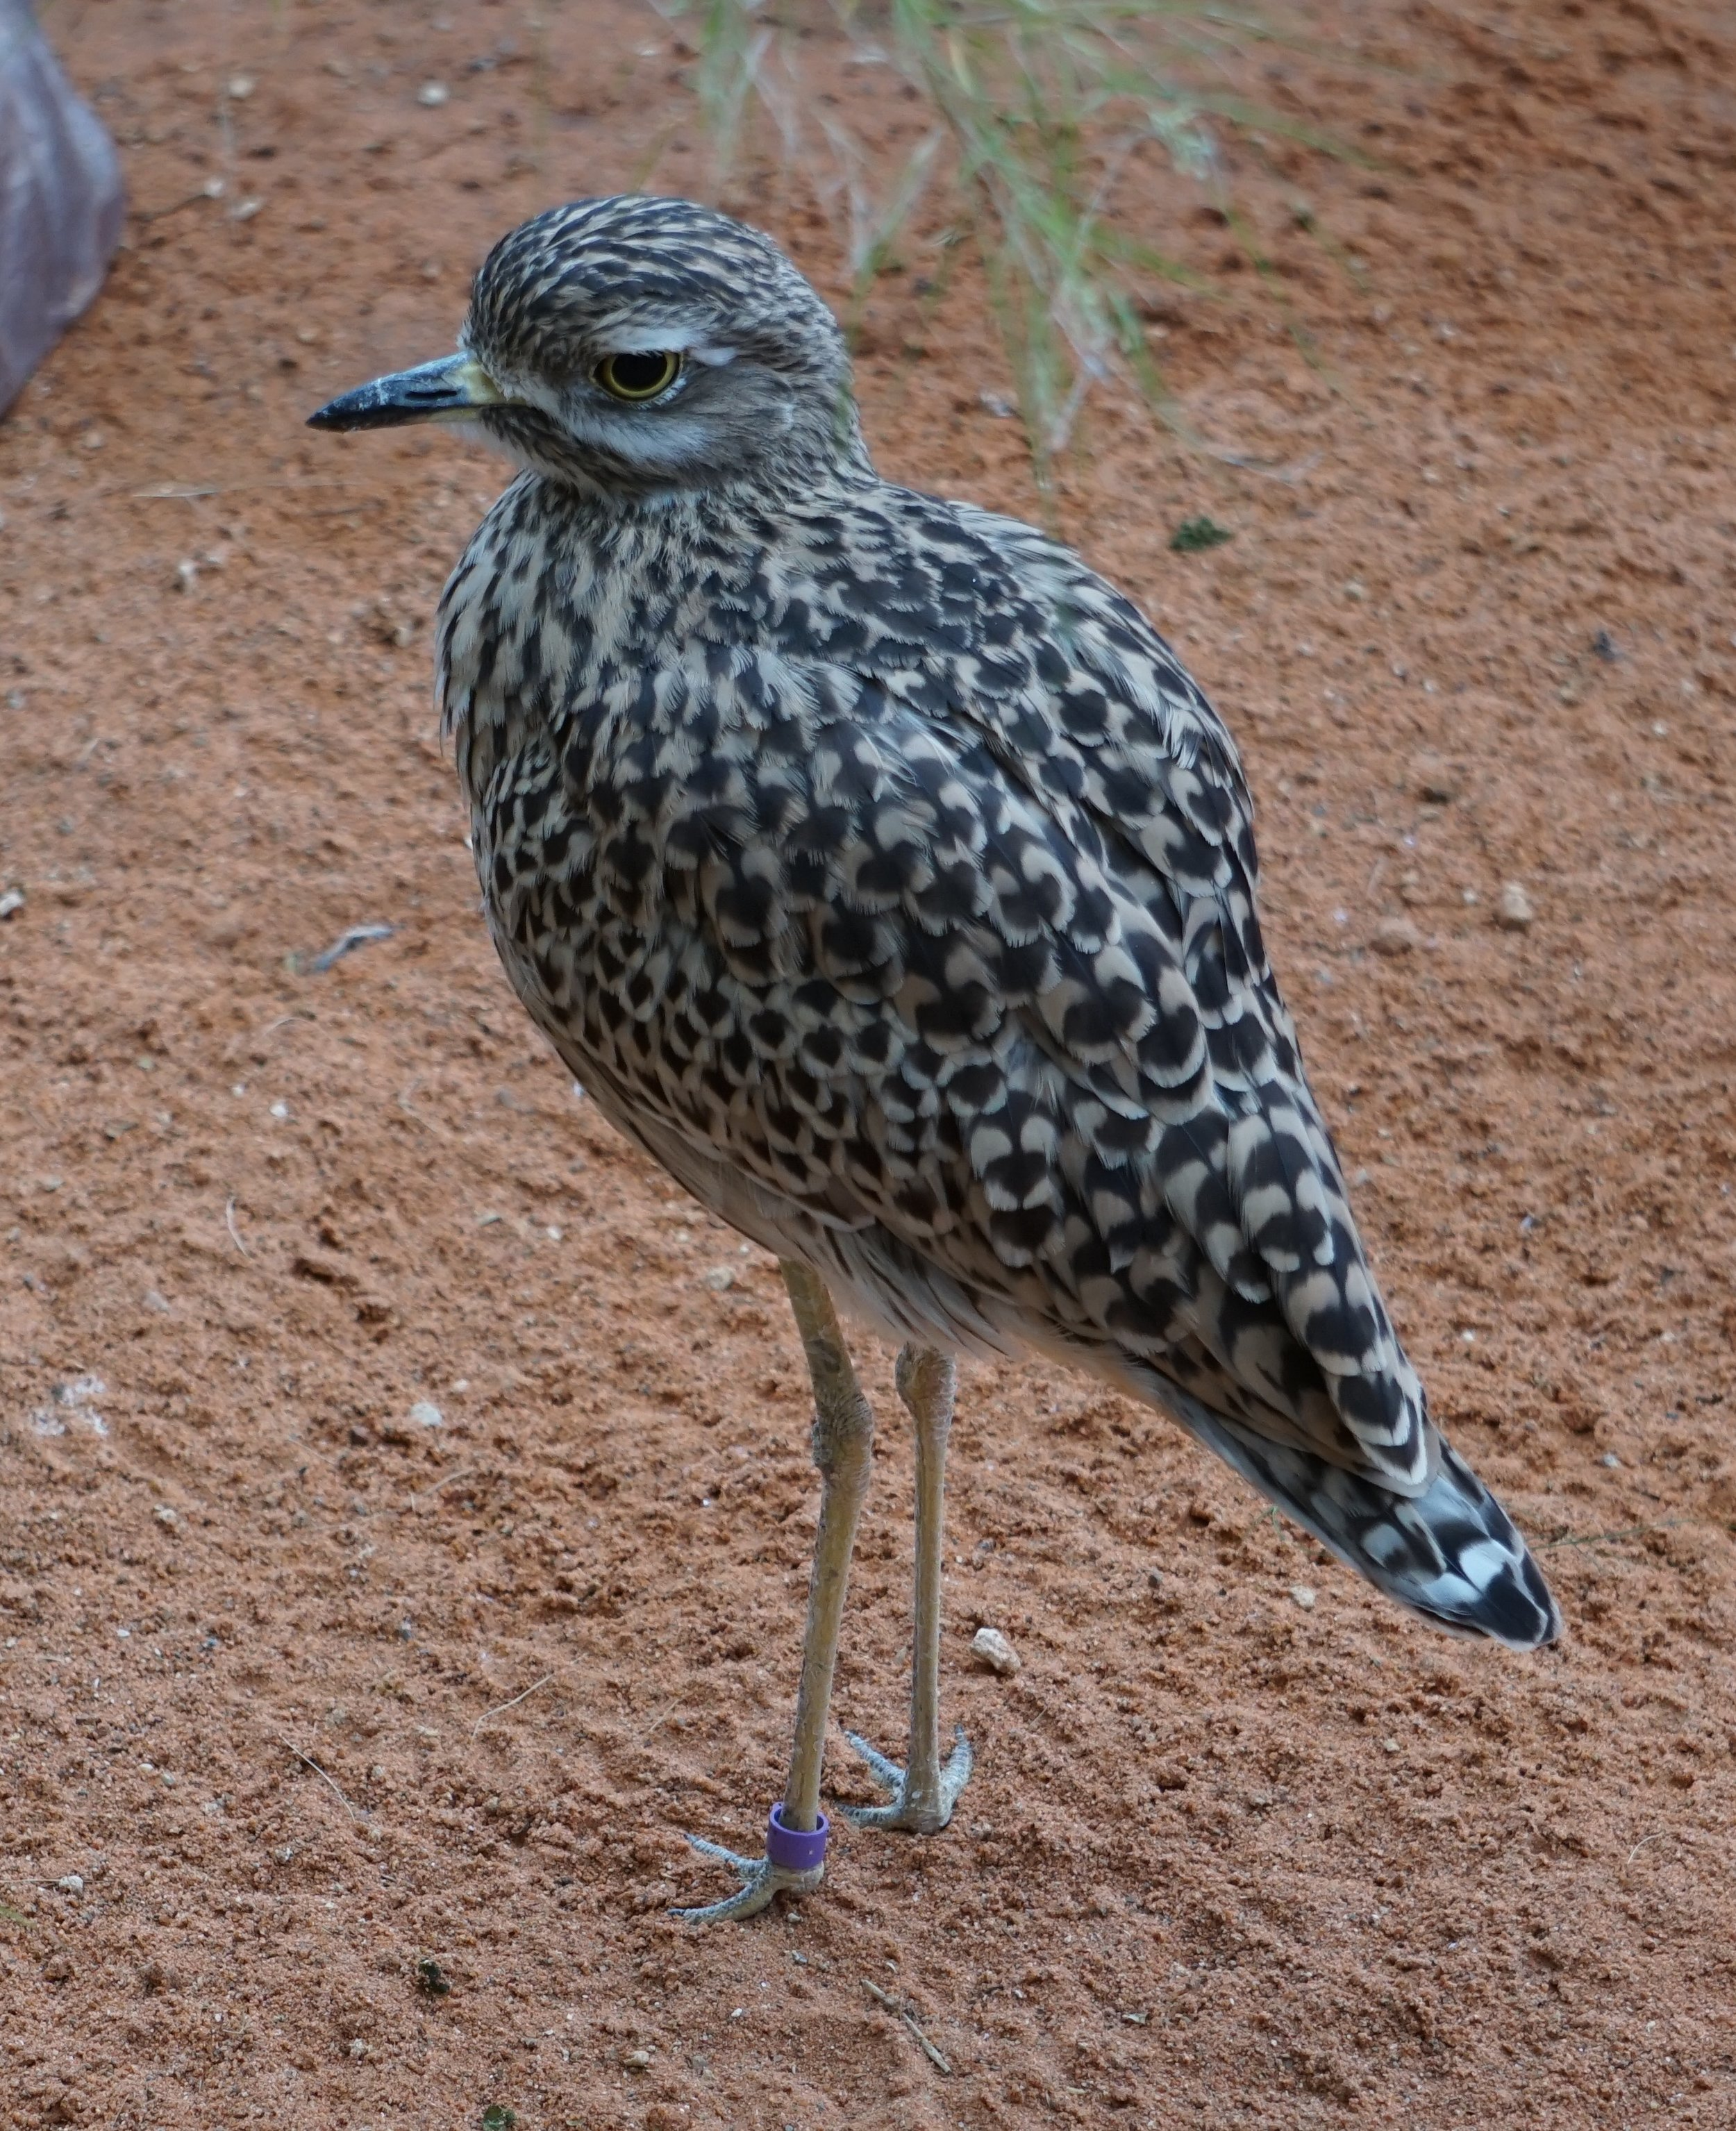 This African bird, a Cape Thick-knee, was seen at Henry Doorly Zoo in Omaha.